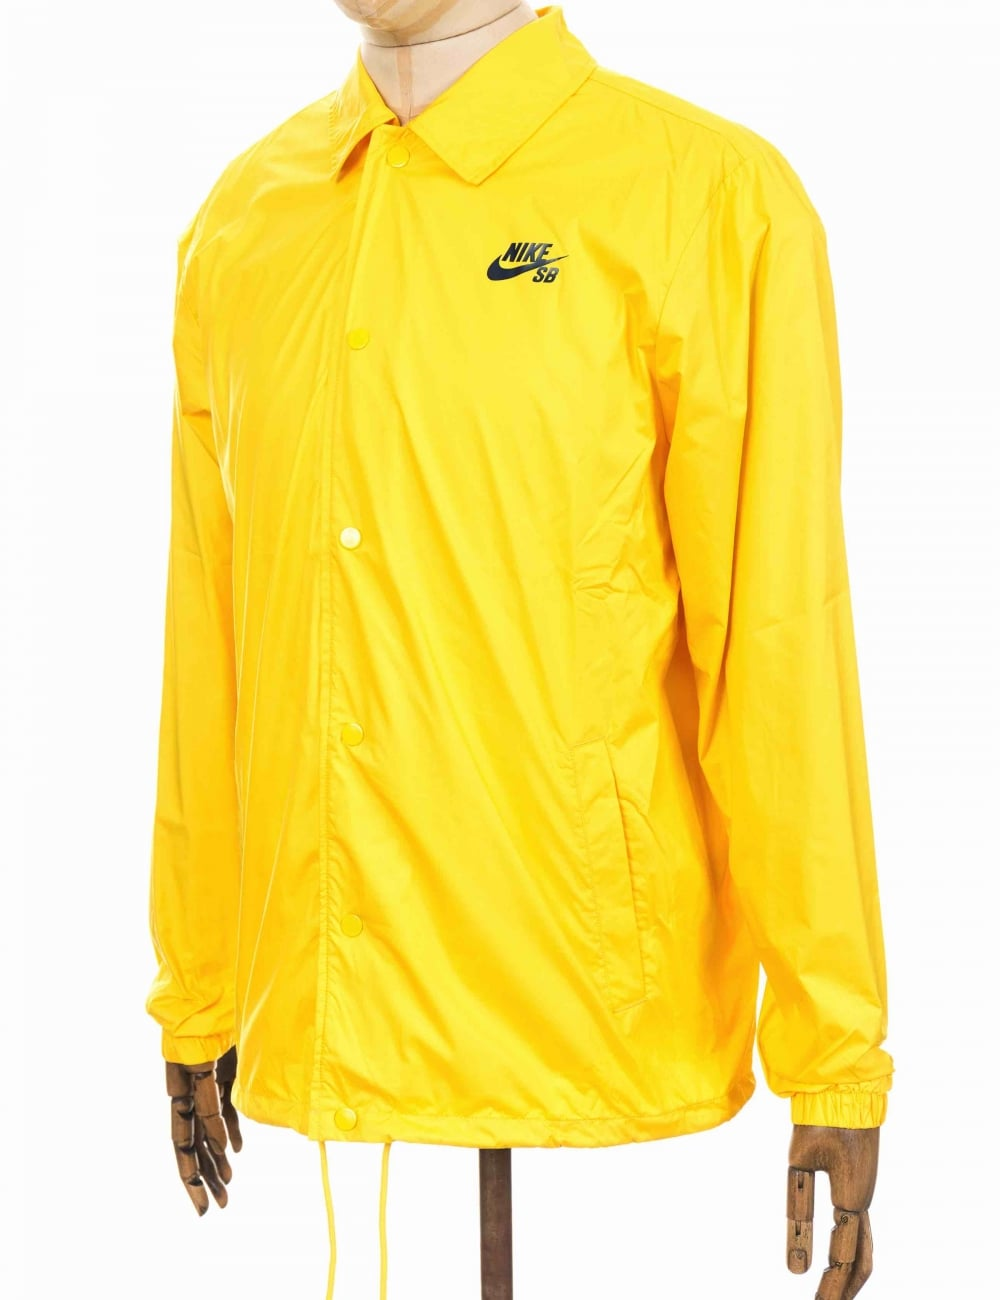 cfd12f2a8b40 Nike SB Shield Coach Jacket - Tour Yellow - Clothing from Fat Buddha ...